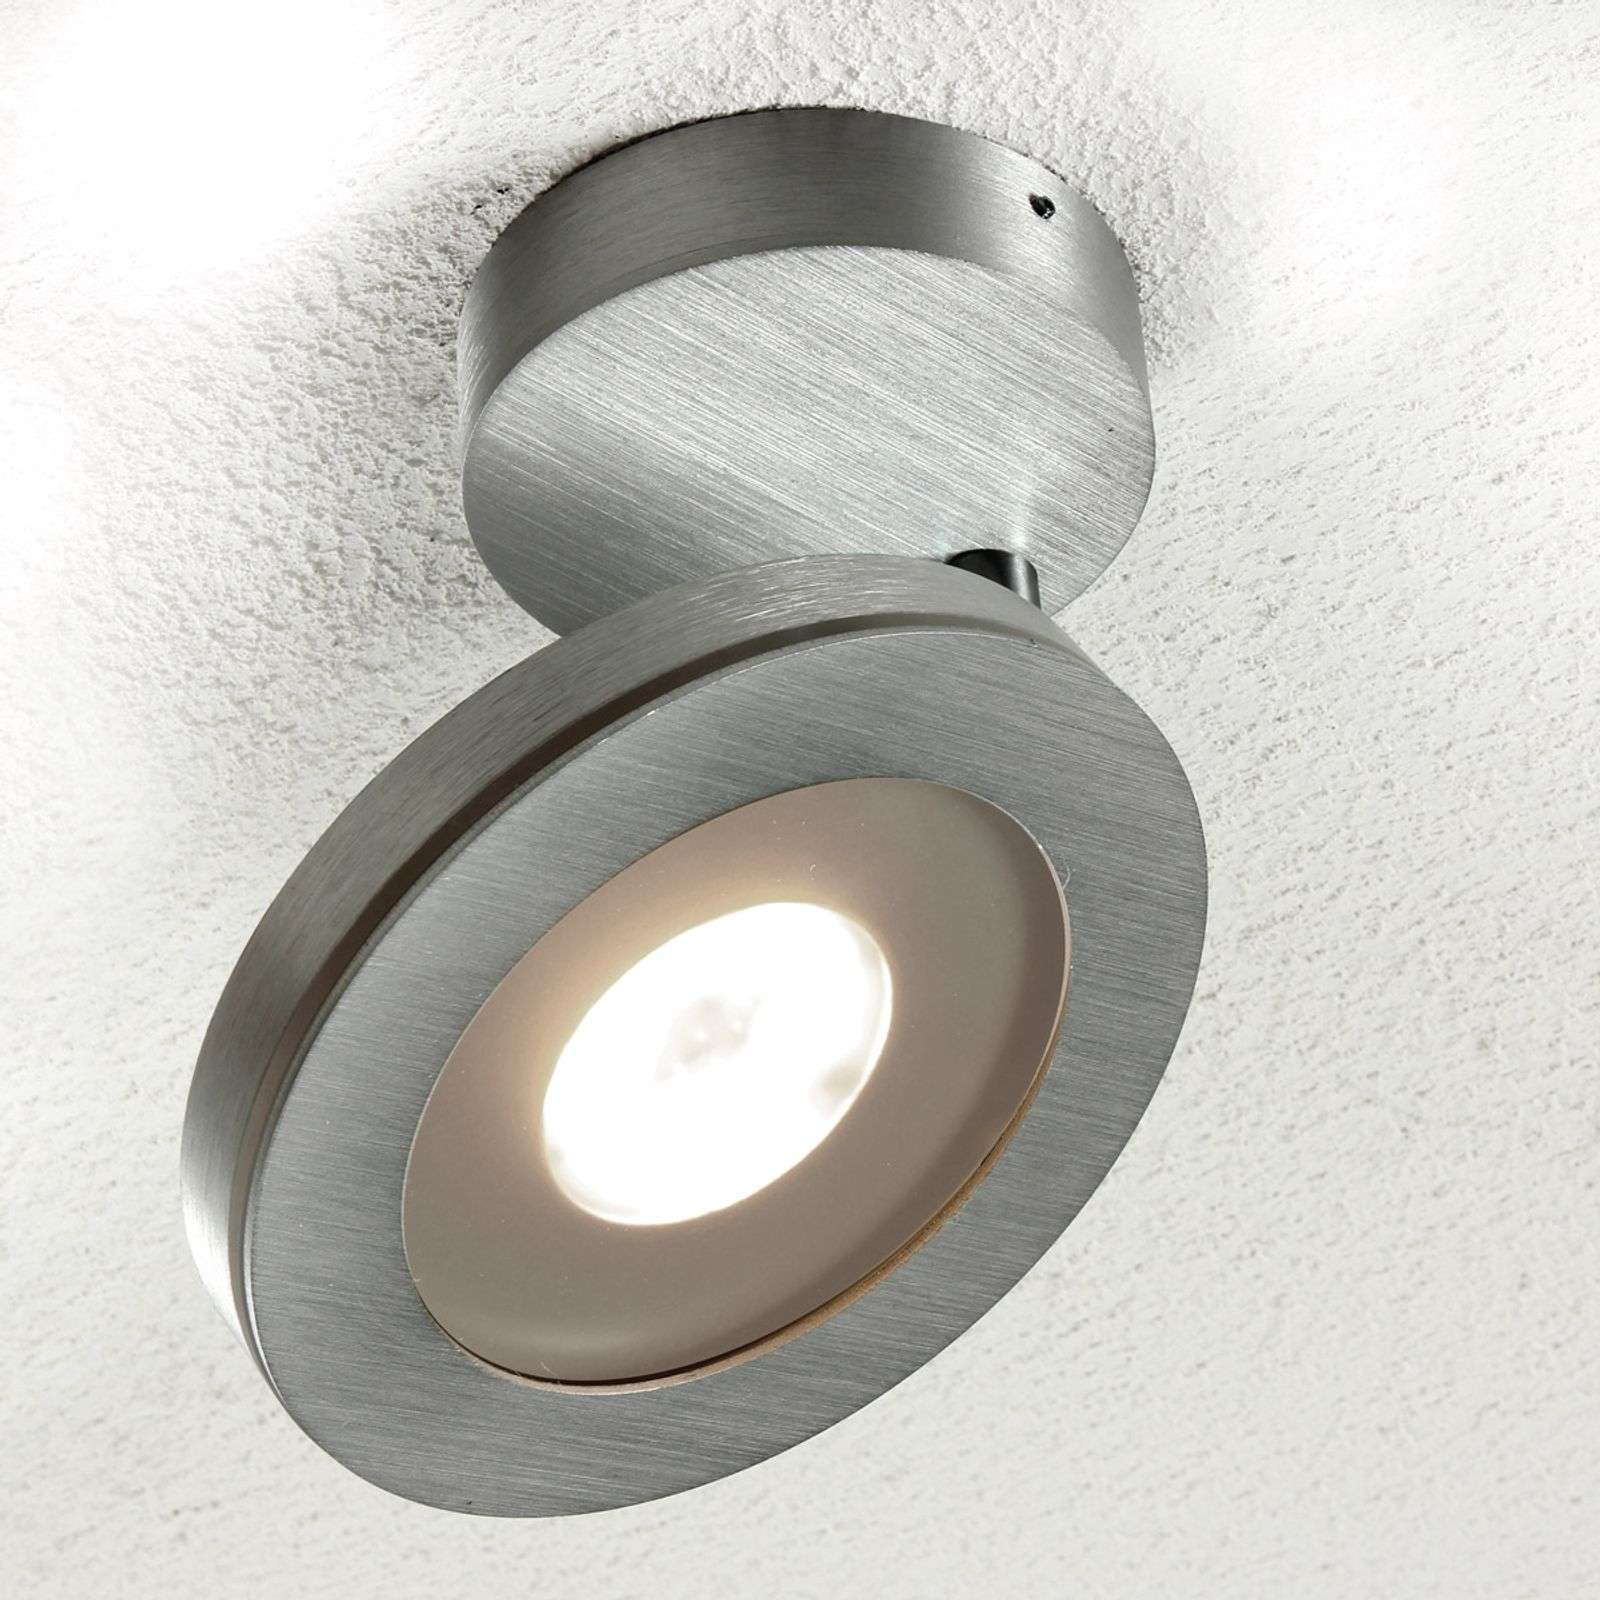 Escale Vio - foco LED orientable de aluminio